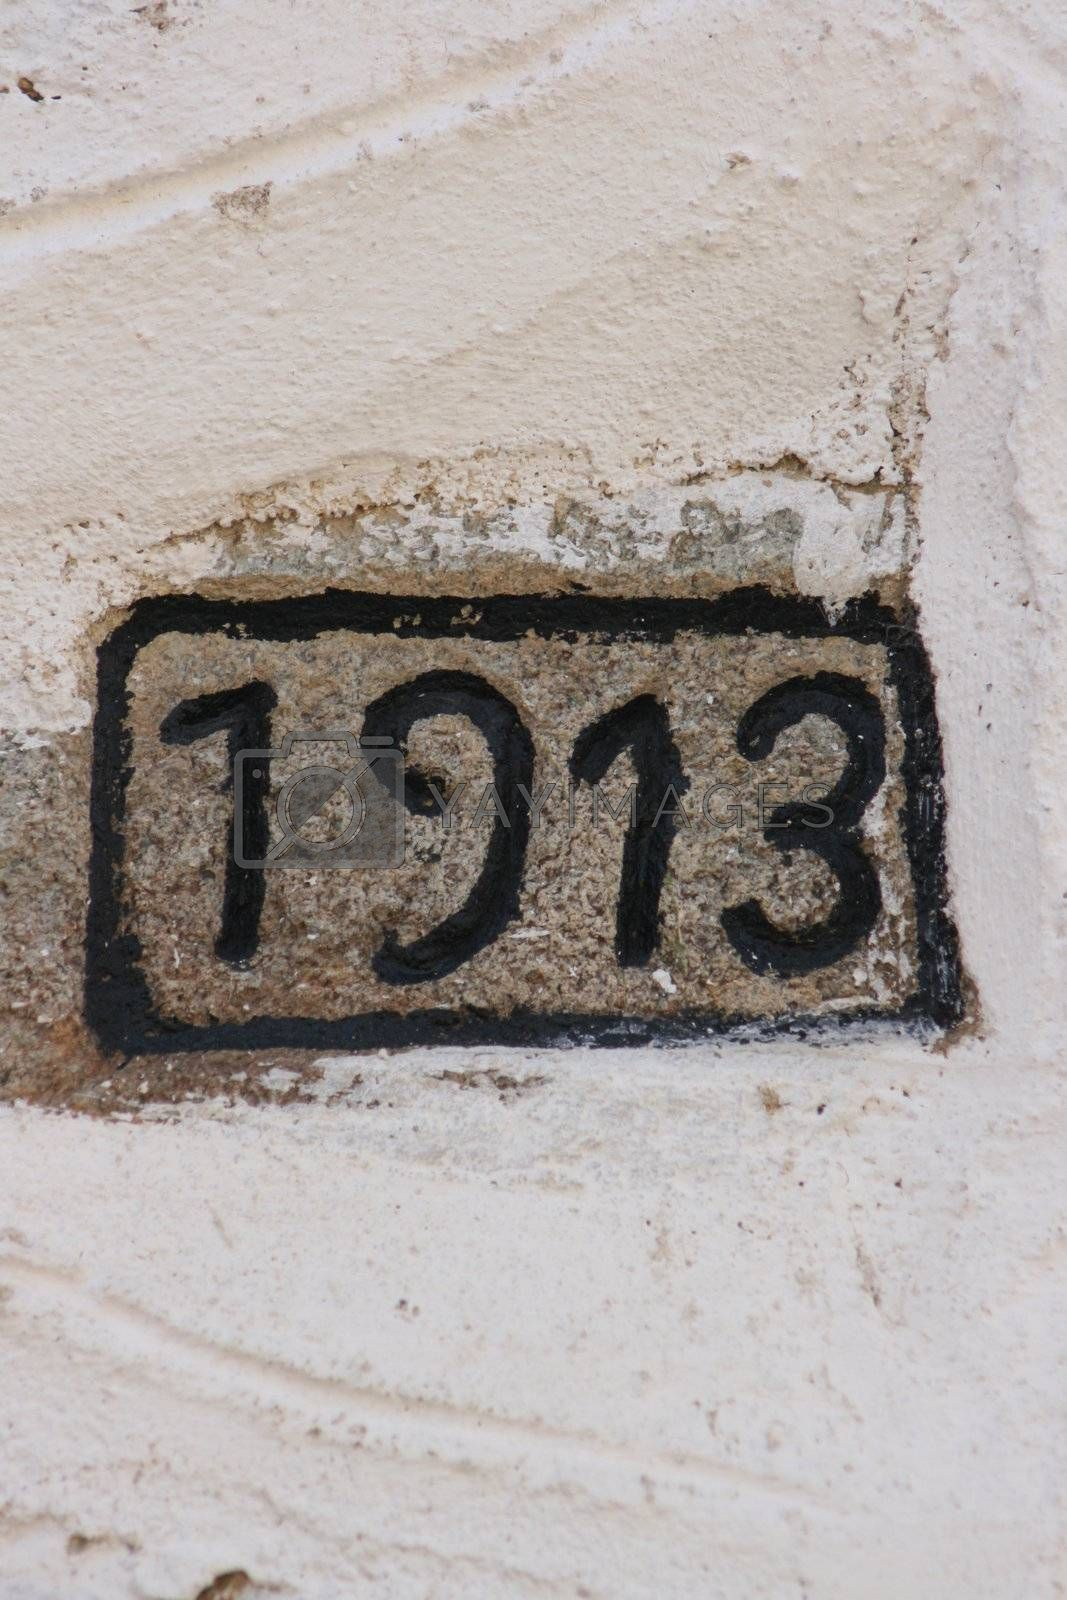 1913, numbers